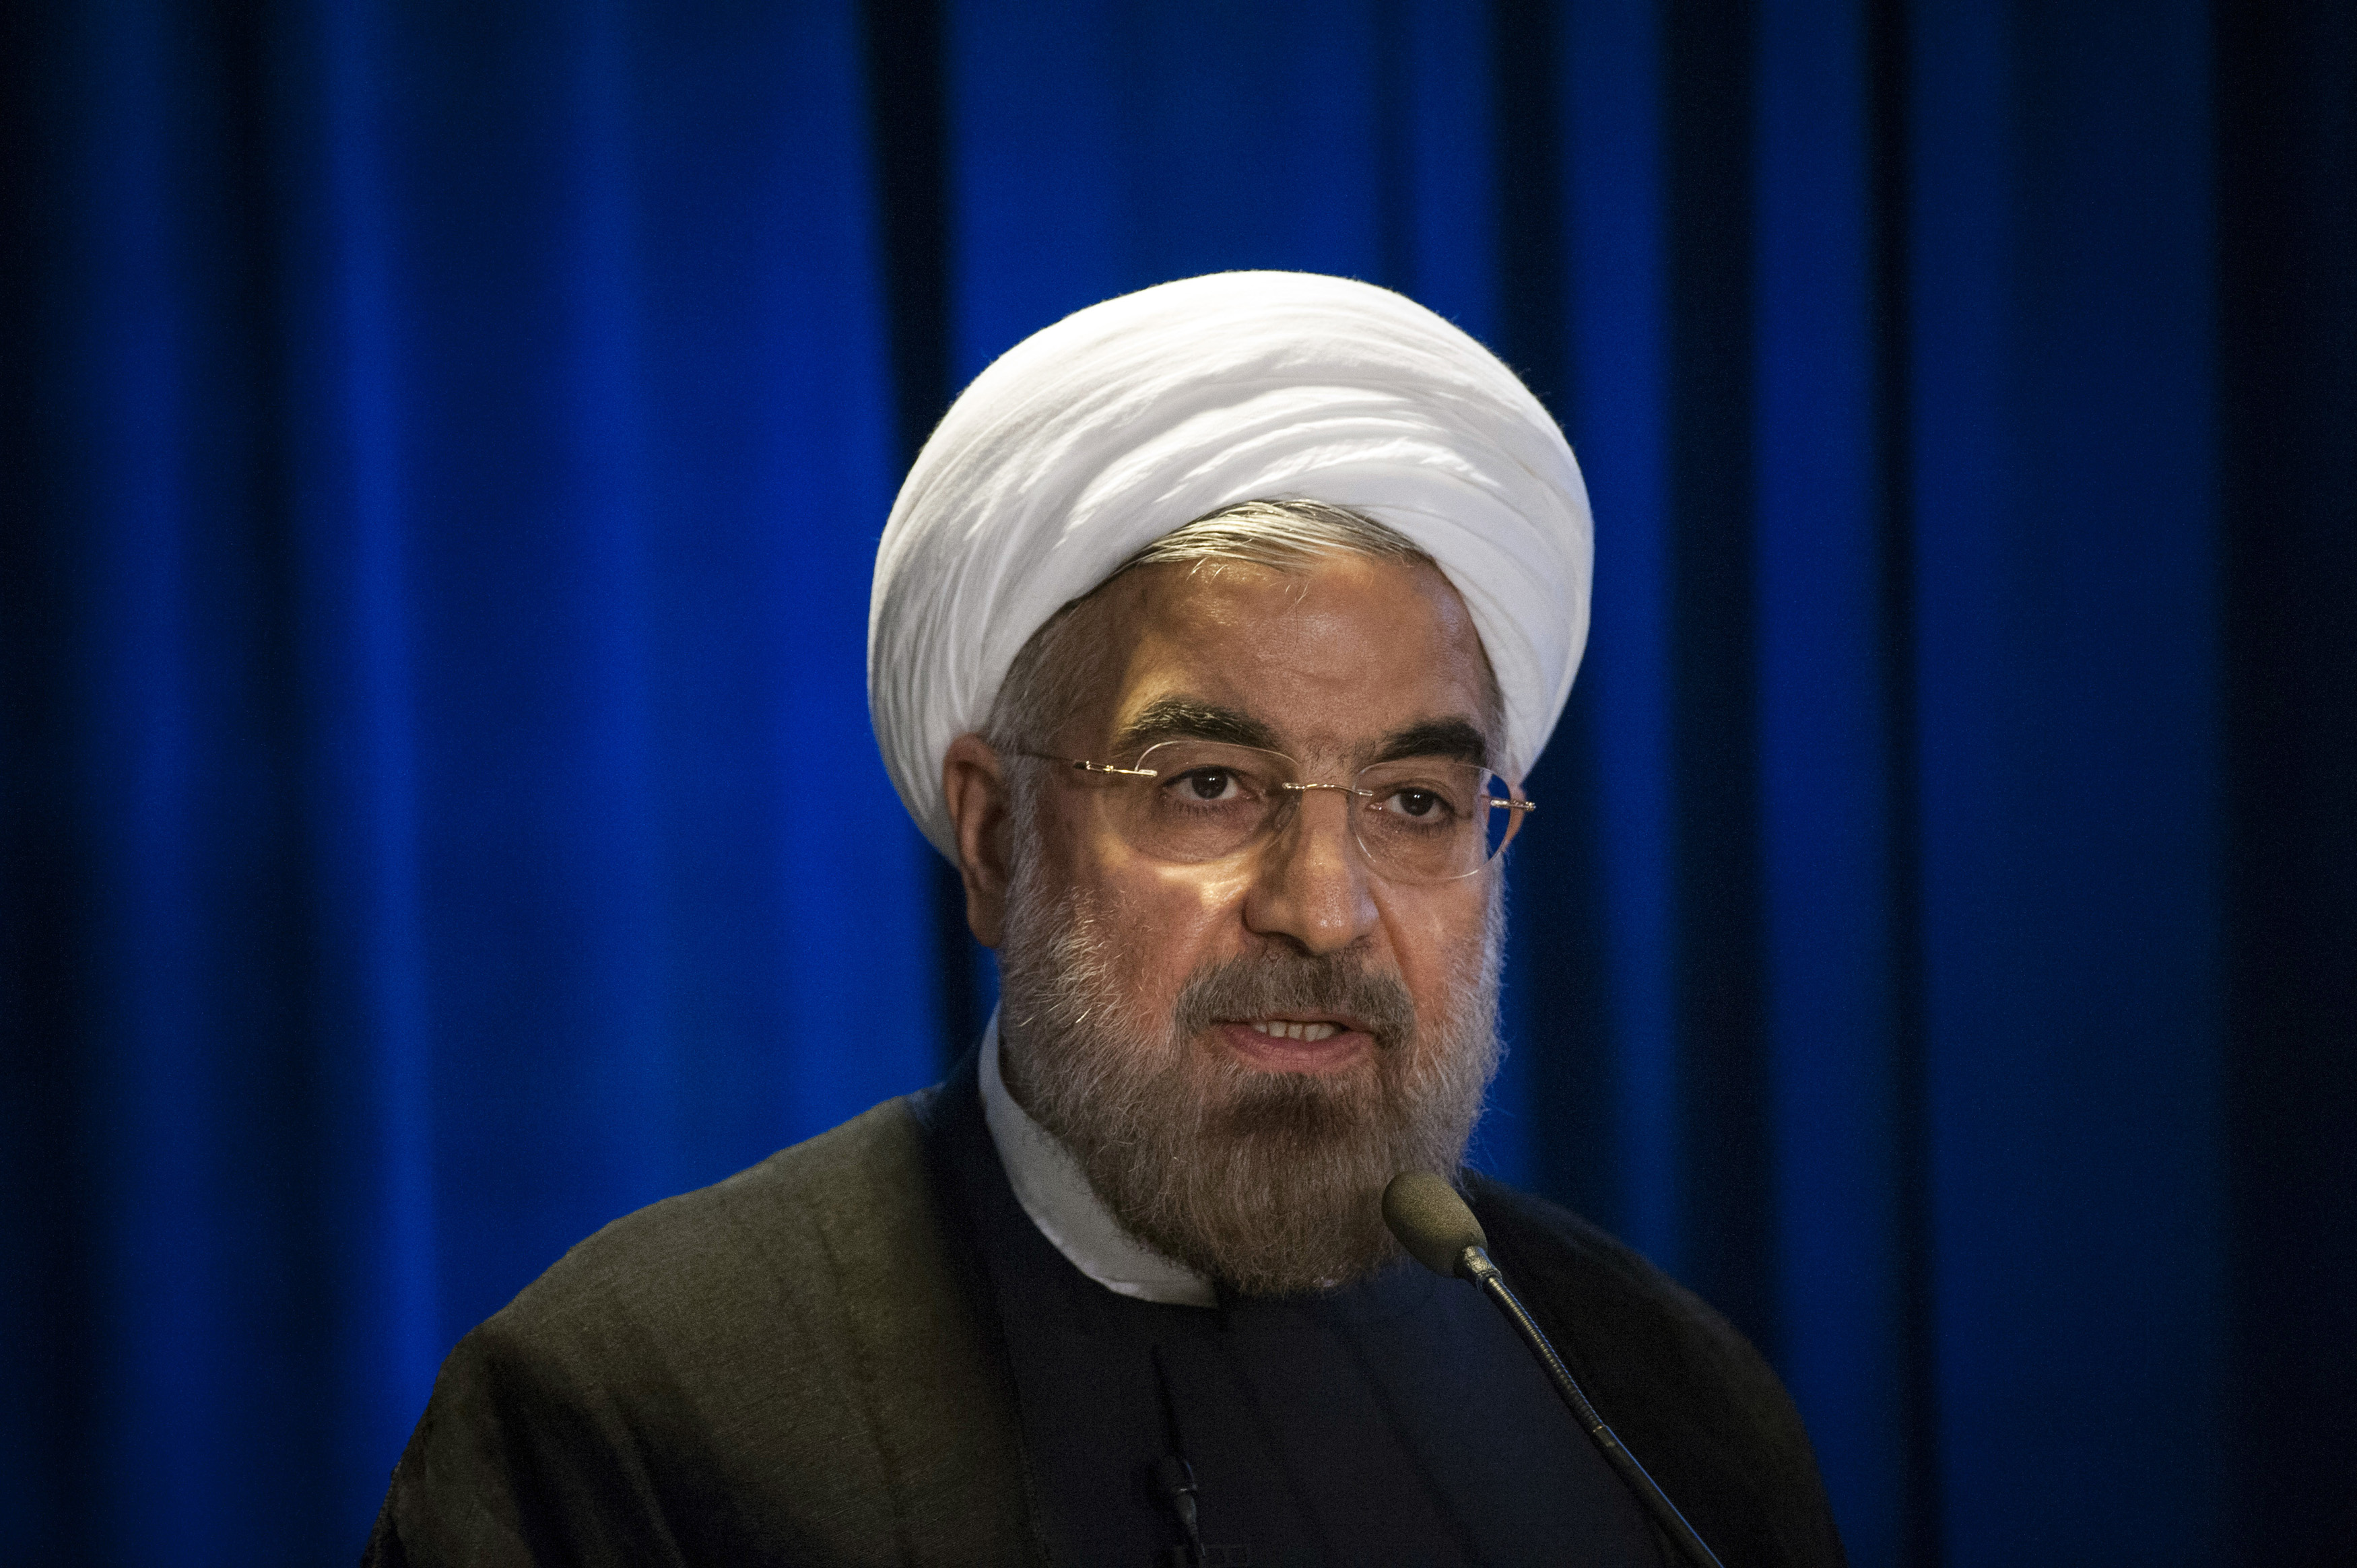 Iran's President Hasan Rouhani speaks during an event in New York